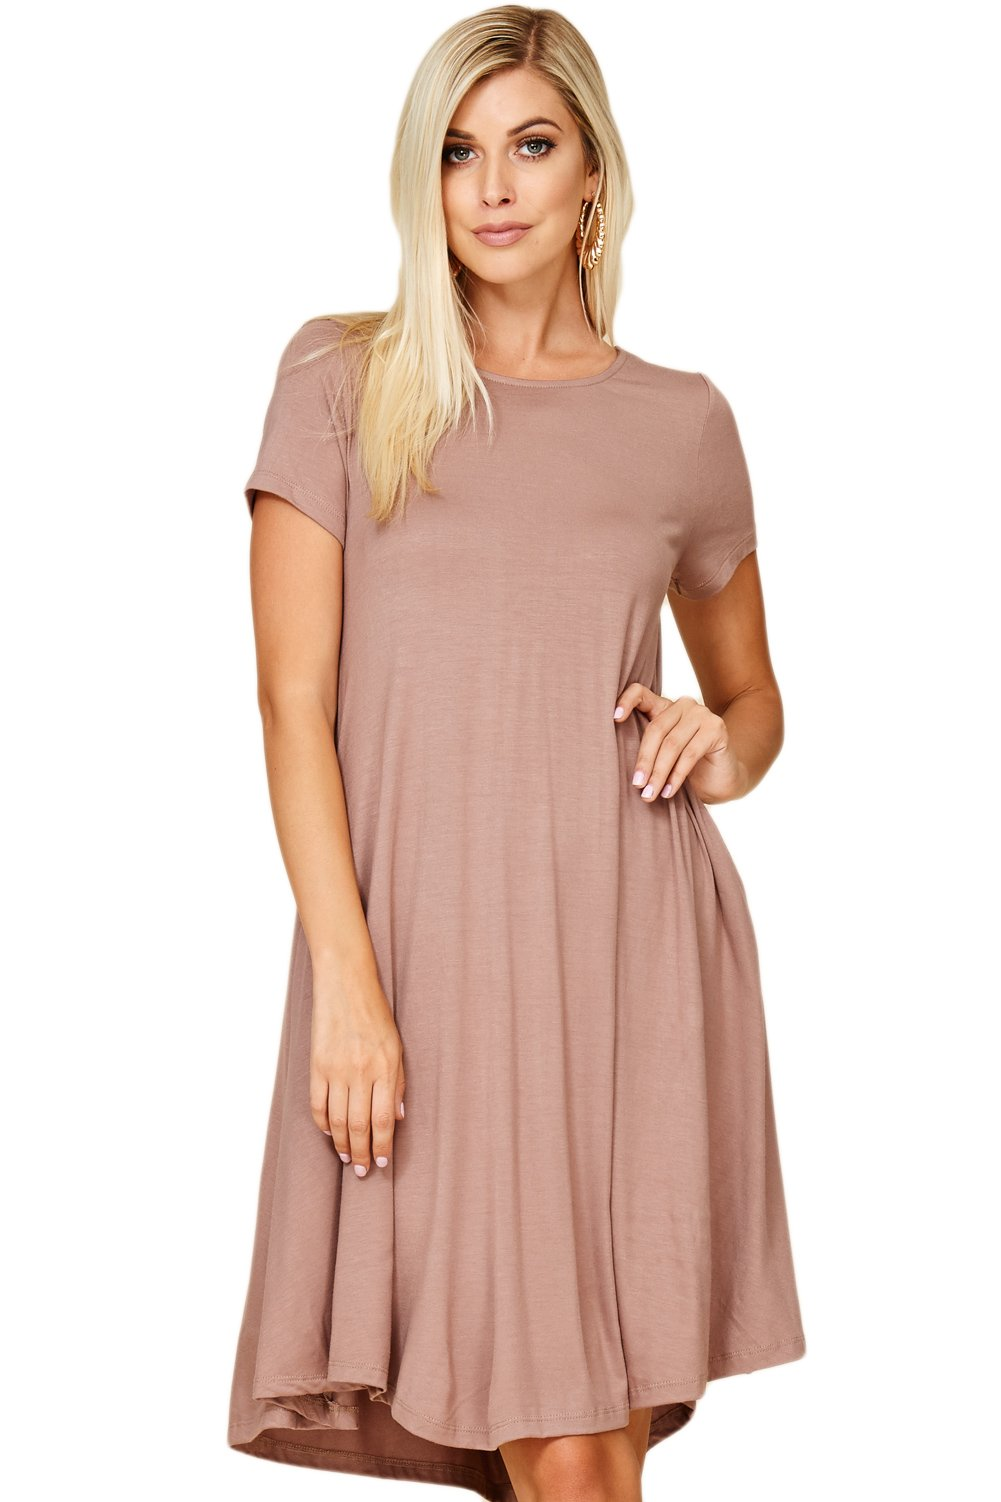 Annabelle Women's Comfy Short Sleeve Scoop Neck Swing Dresses with Pockets X-Large Brown Taupe Grey D5213X